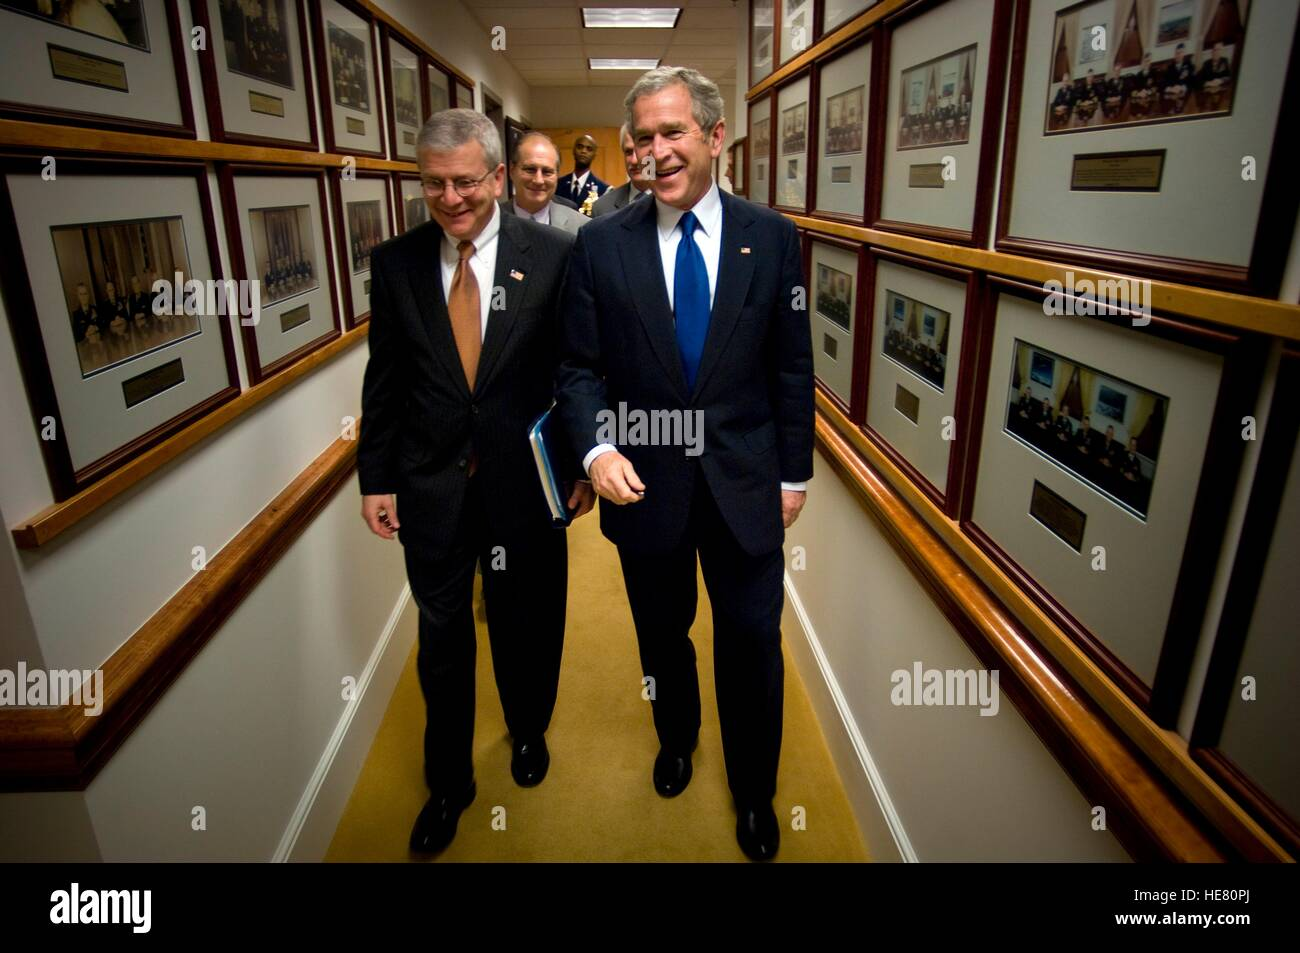 U.S. President George W. Bush and White House Chief of Staff Josh Bolton walk down a hallway after a military meeting - Stock Image